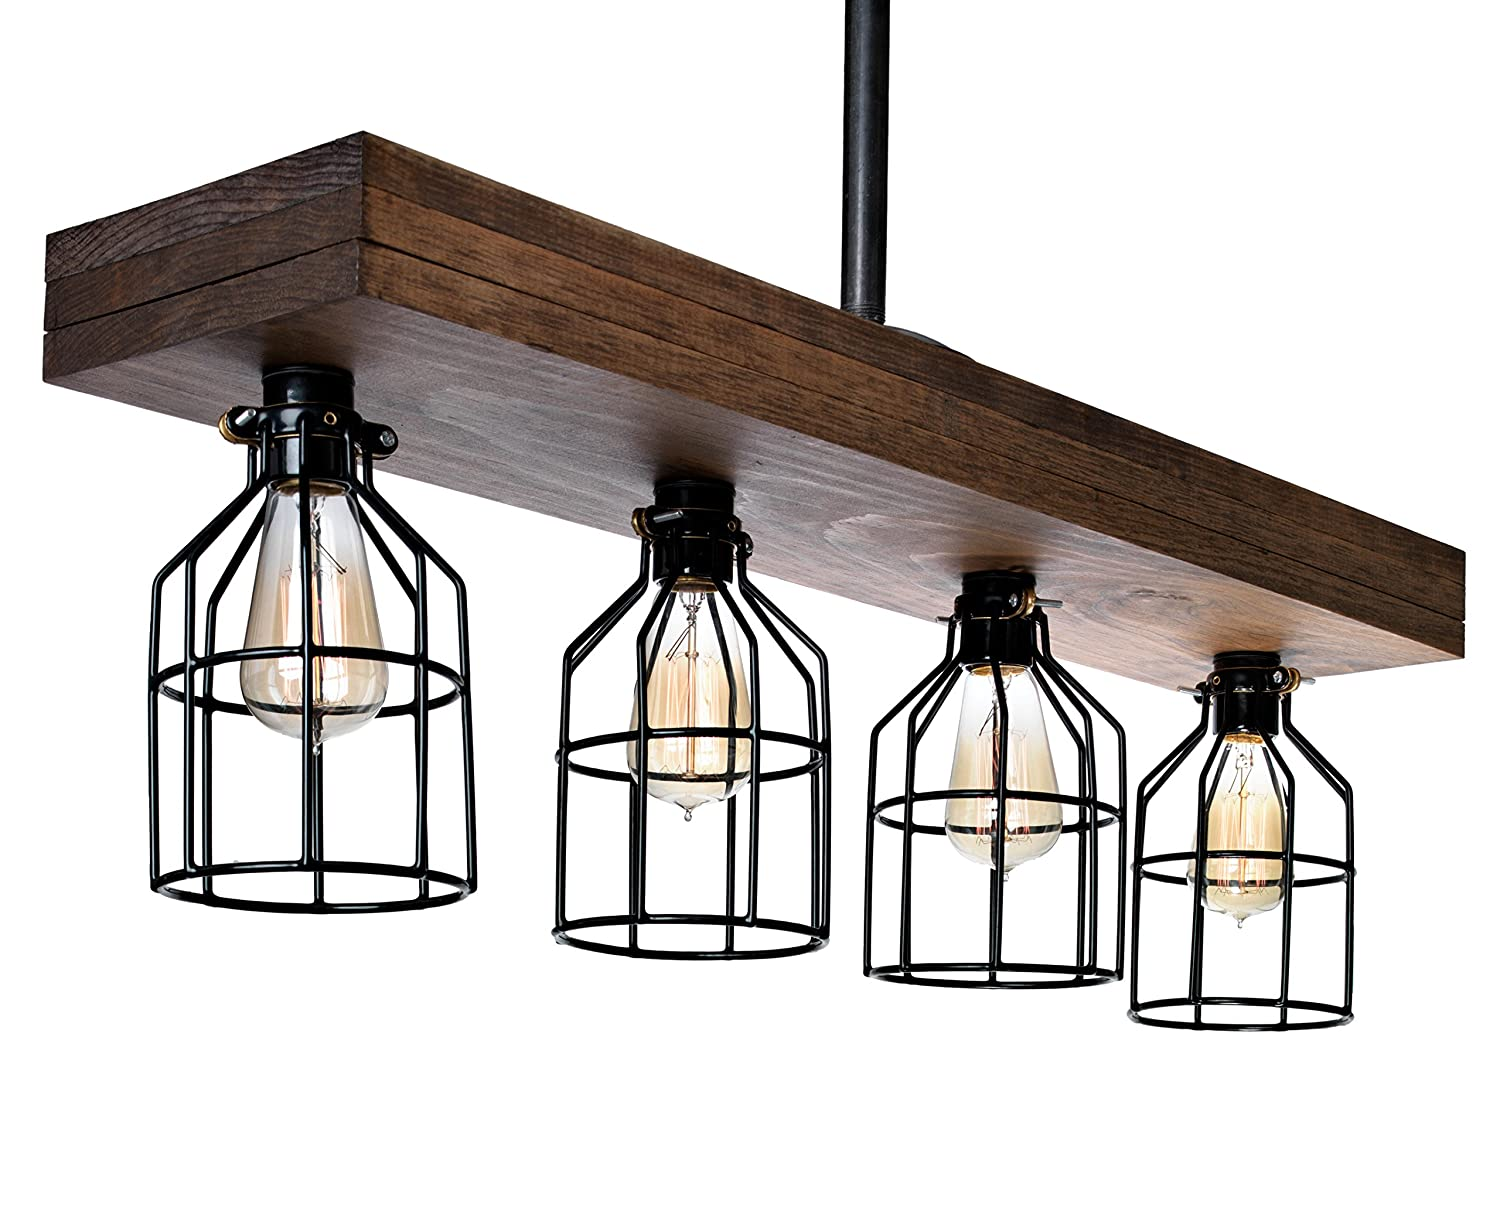 Farmhouse lighting triple wood beam rustic decor chandelier light rustic lighting for kitchen island lighting dining room bar industrial and billiard